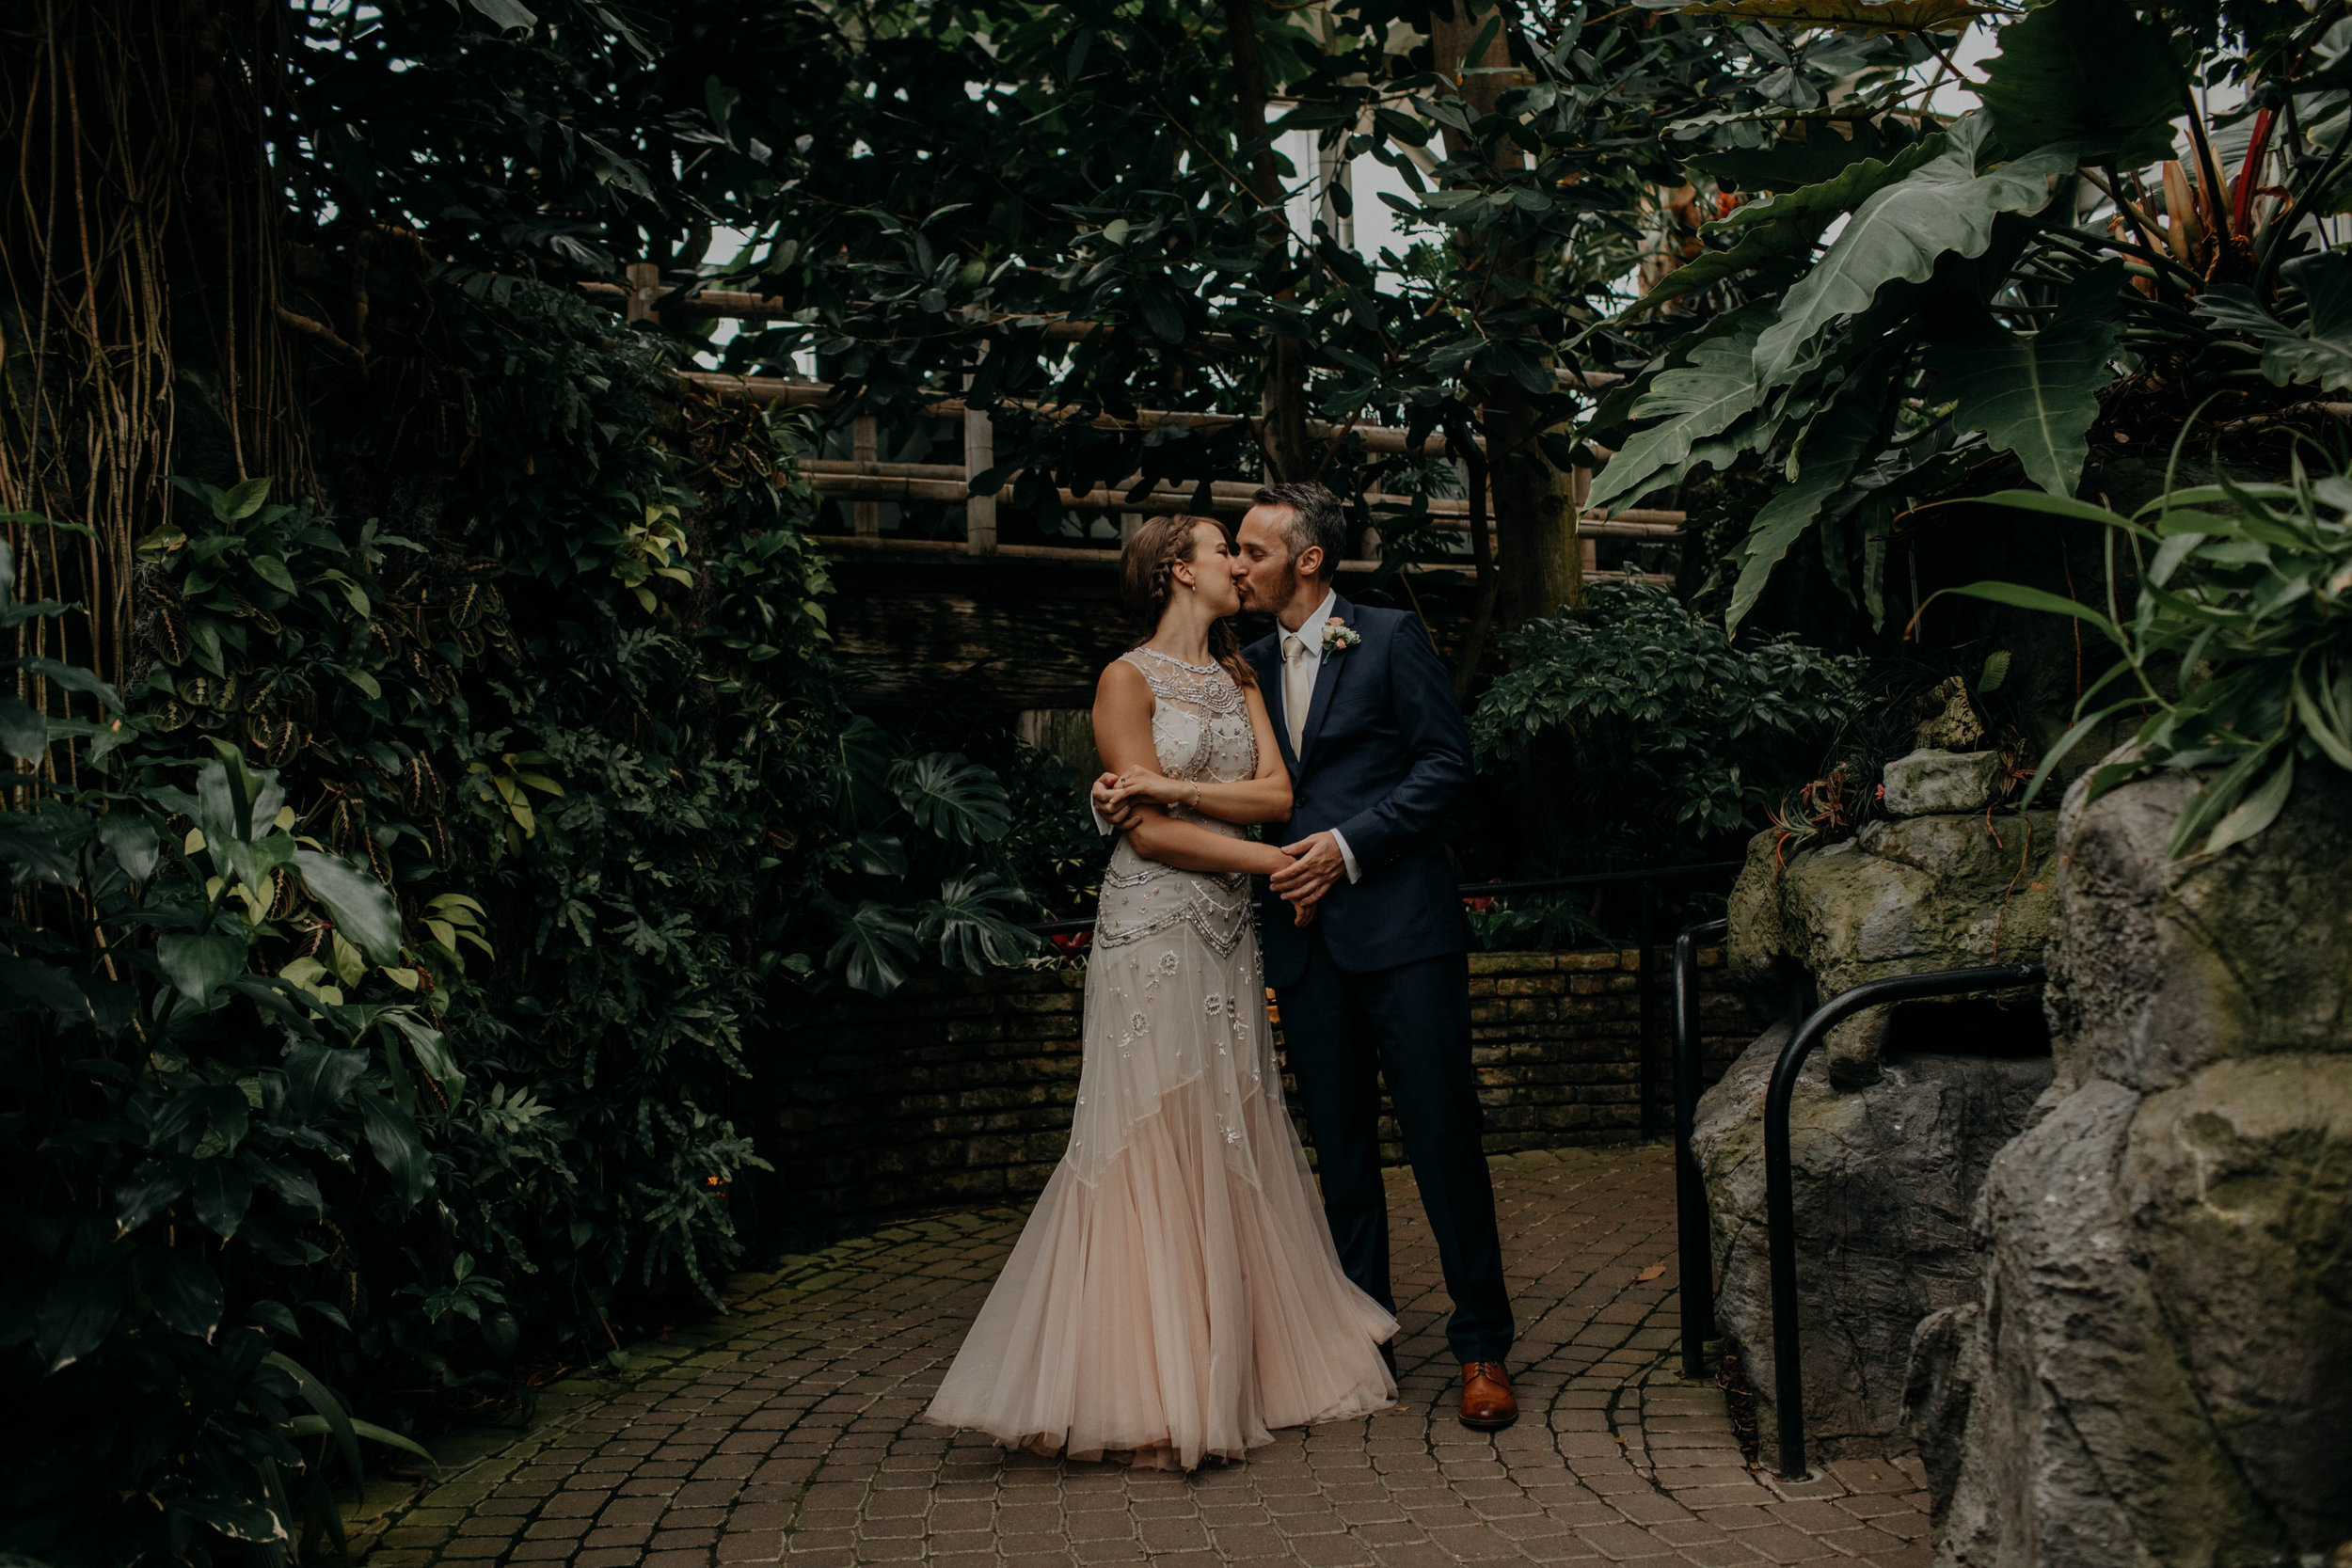 franklin park conservatory wedding columbus ohio wedding photographer grace e jones photography138.jpg